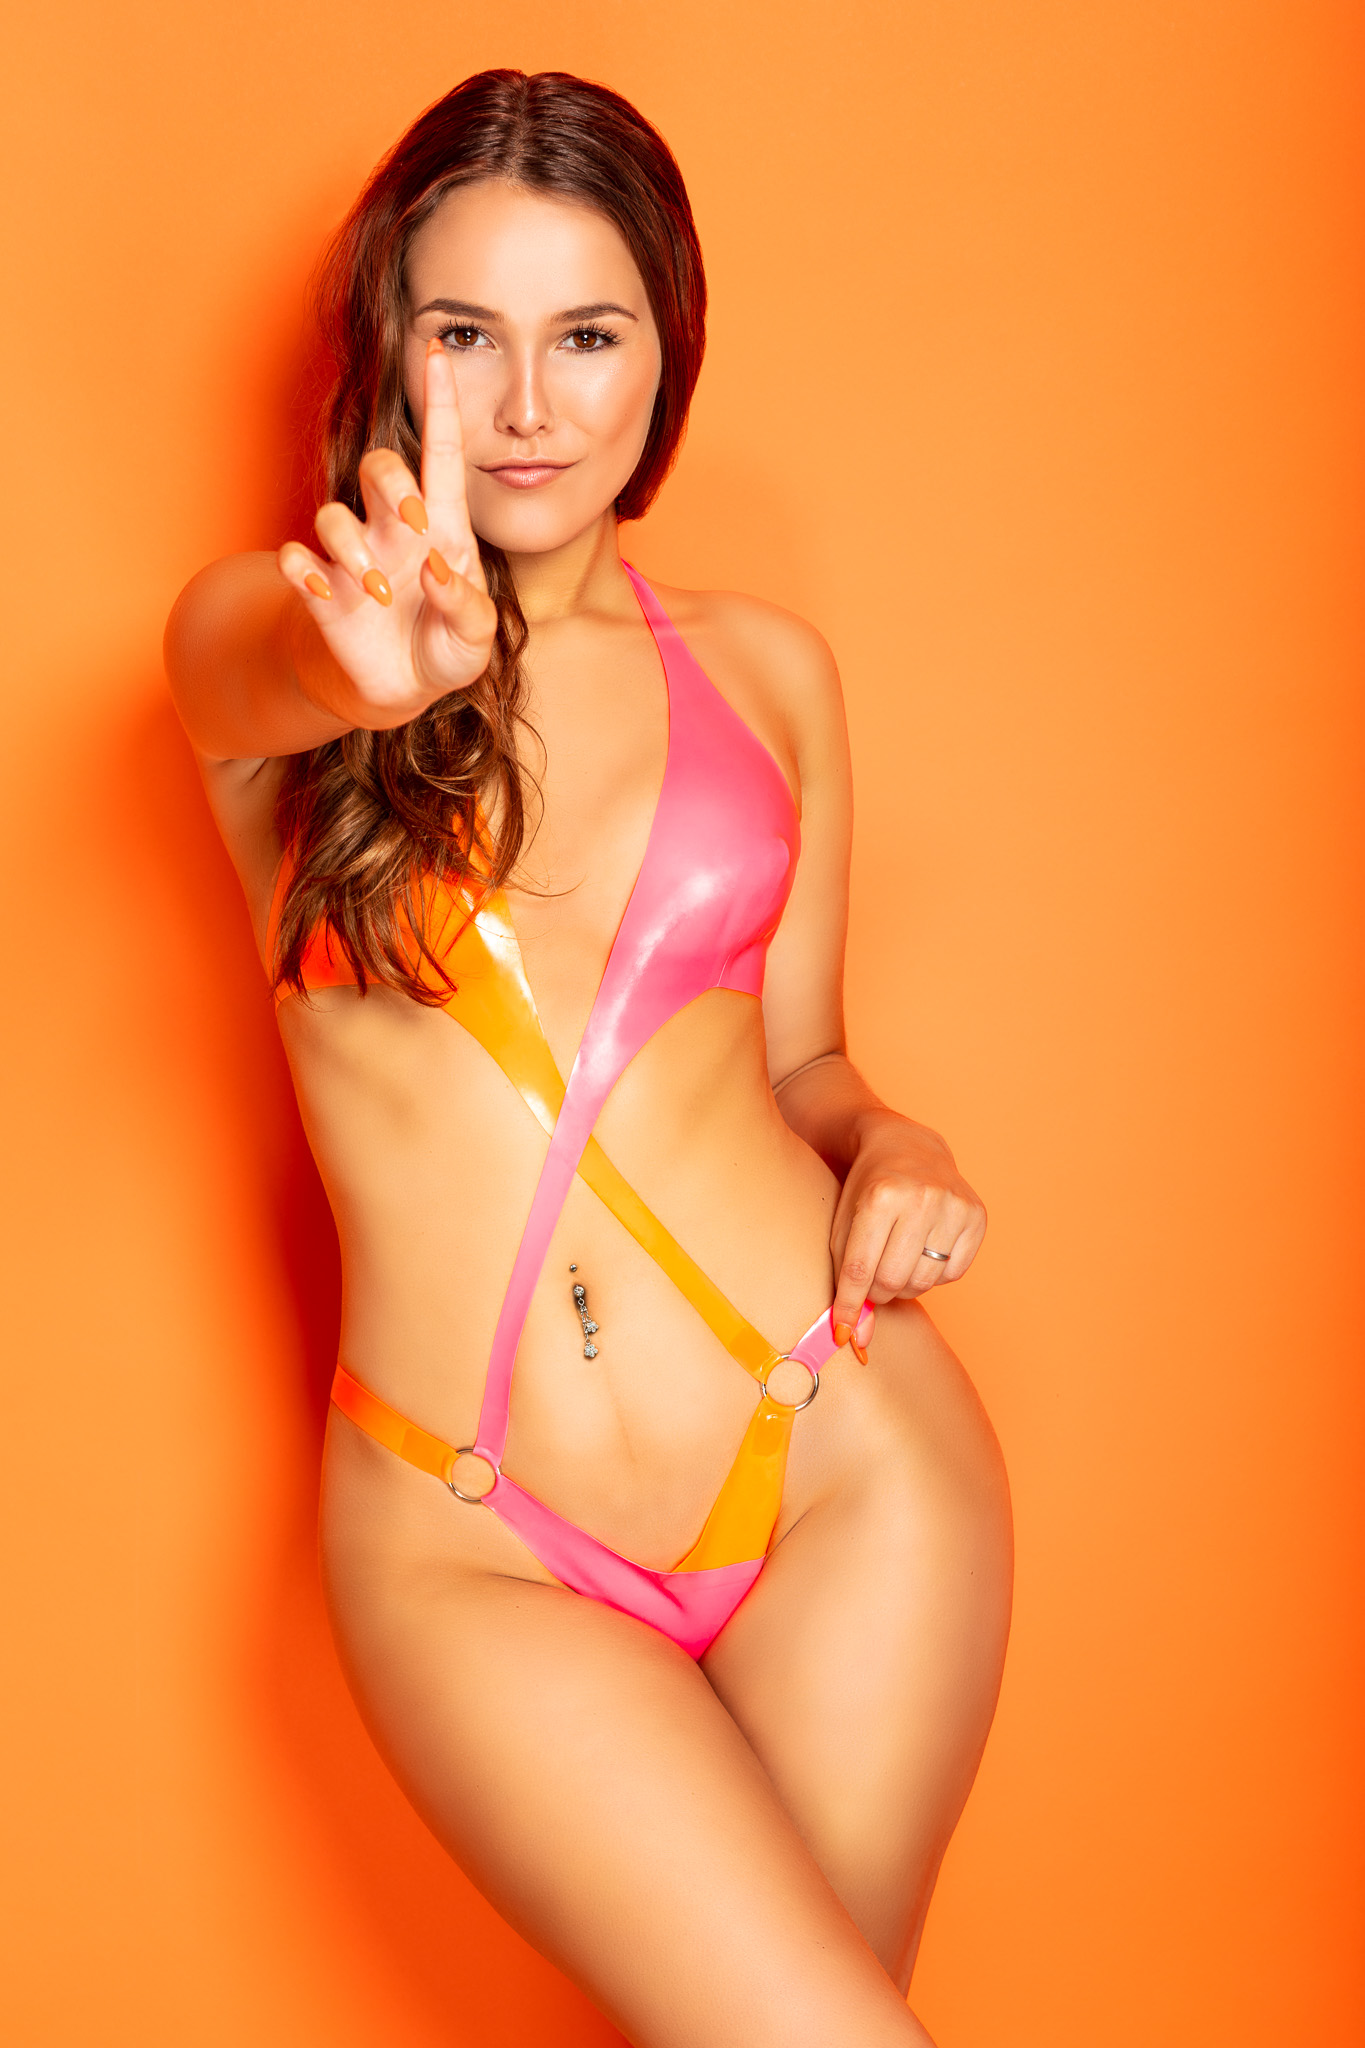 Model Shannety in Latex Swimwear by William Wilde